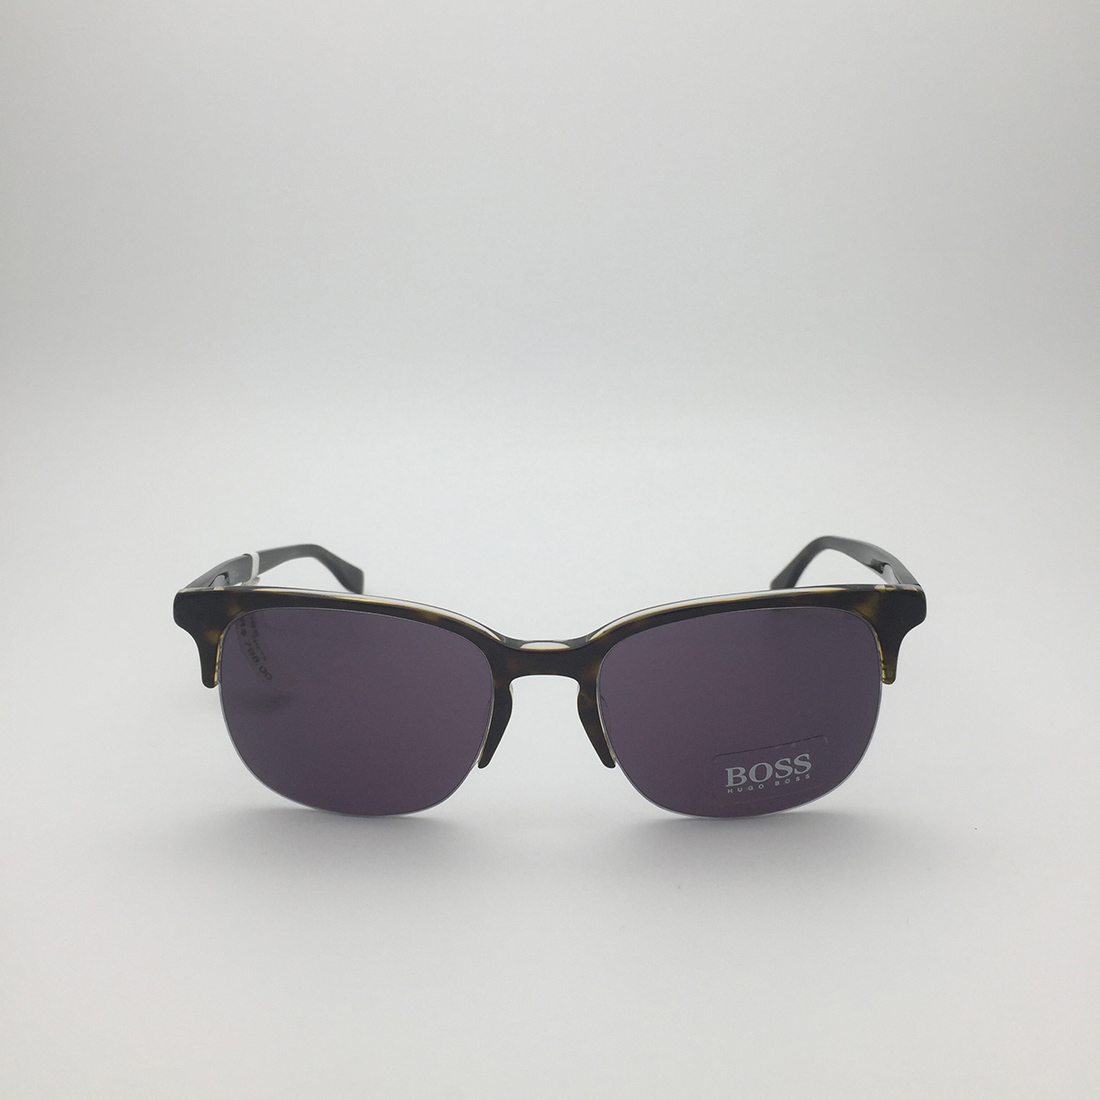 HUGO BOSS 0633 DCK